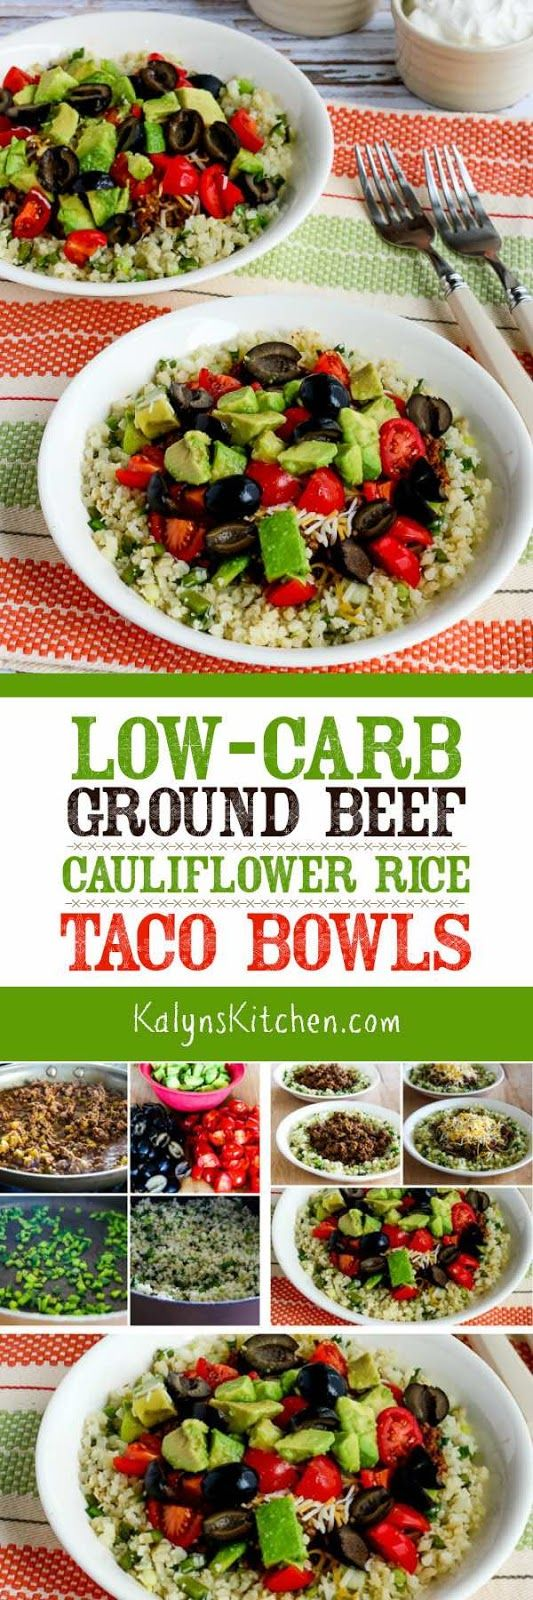 50 best images about Low Carb Recipes on Pinterest | Low ...